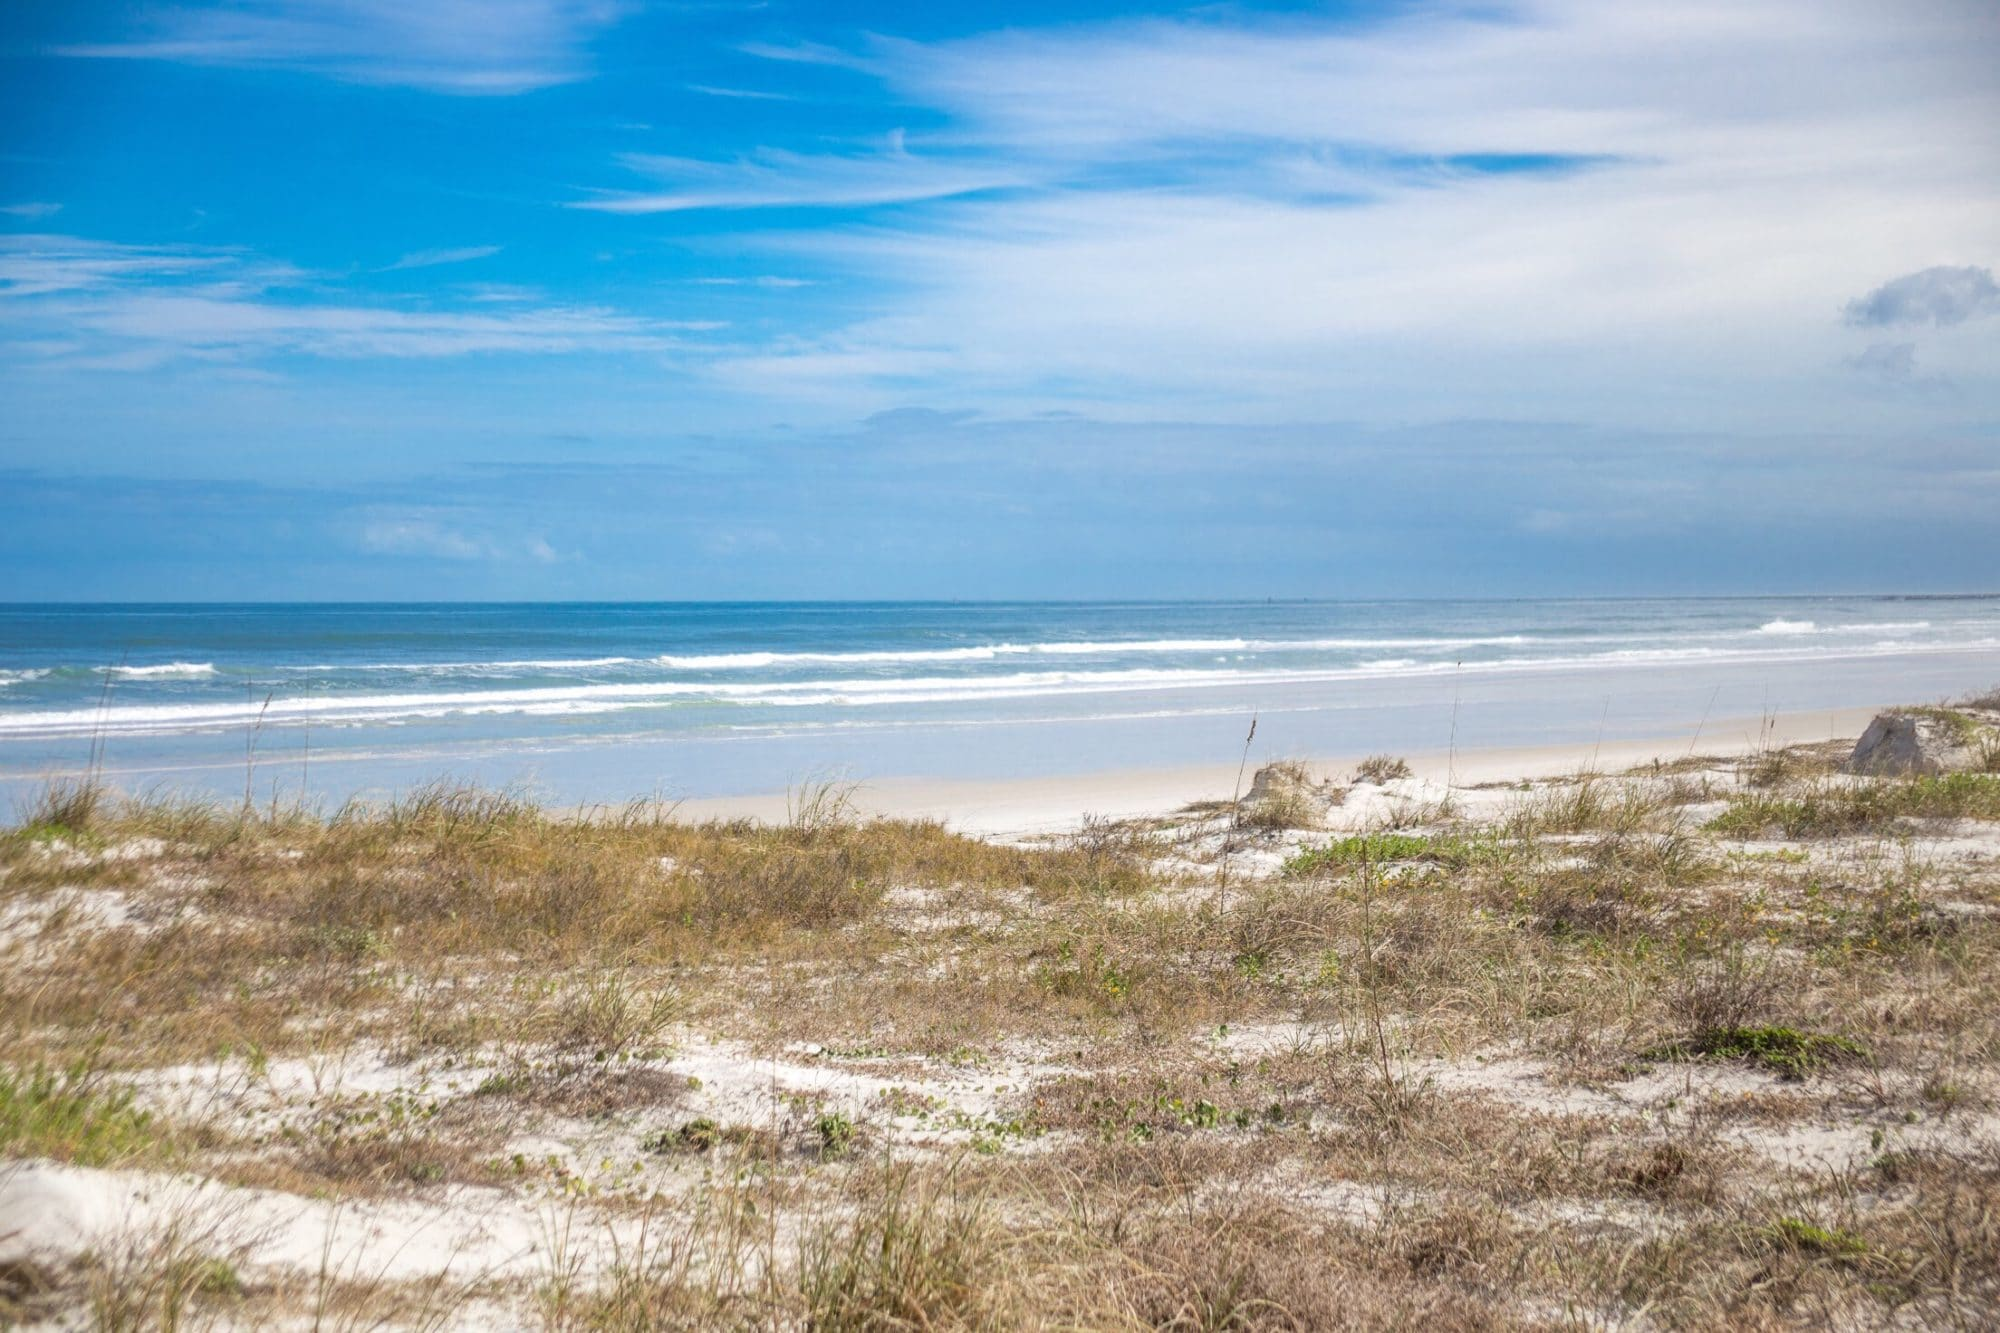 Ponce inlet beach in Florida